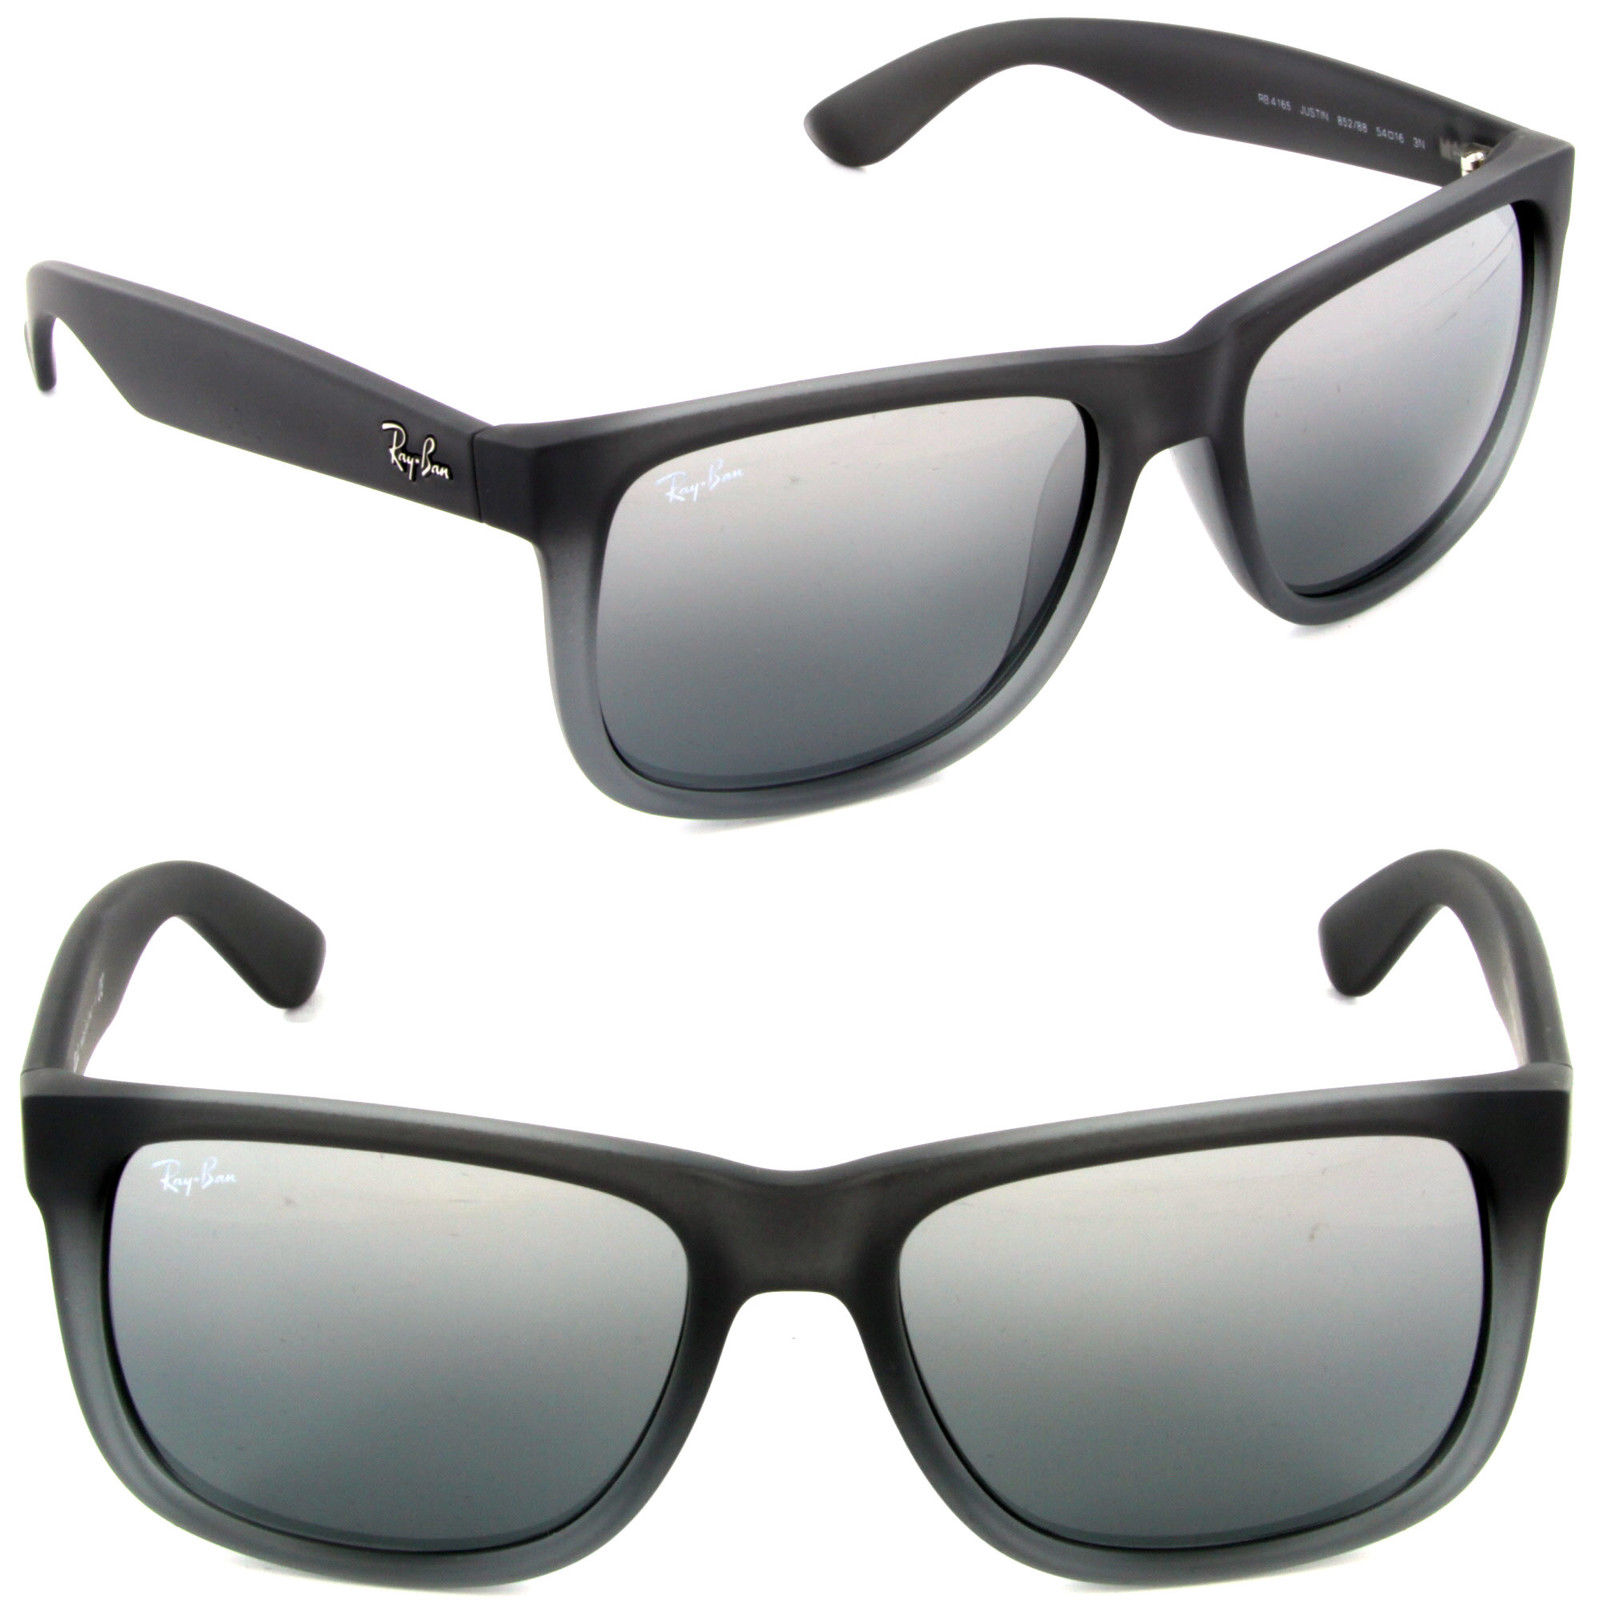 9553bf3cc9cf4 Ray Ban RB4165 852 88 Justin Rubber grey transp   Inspired by ...